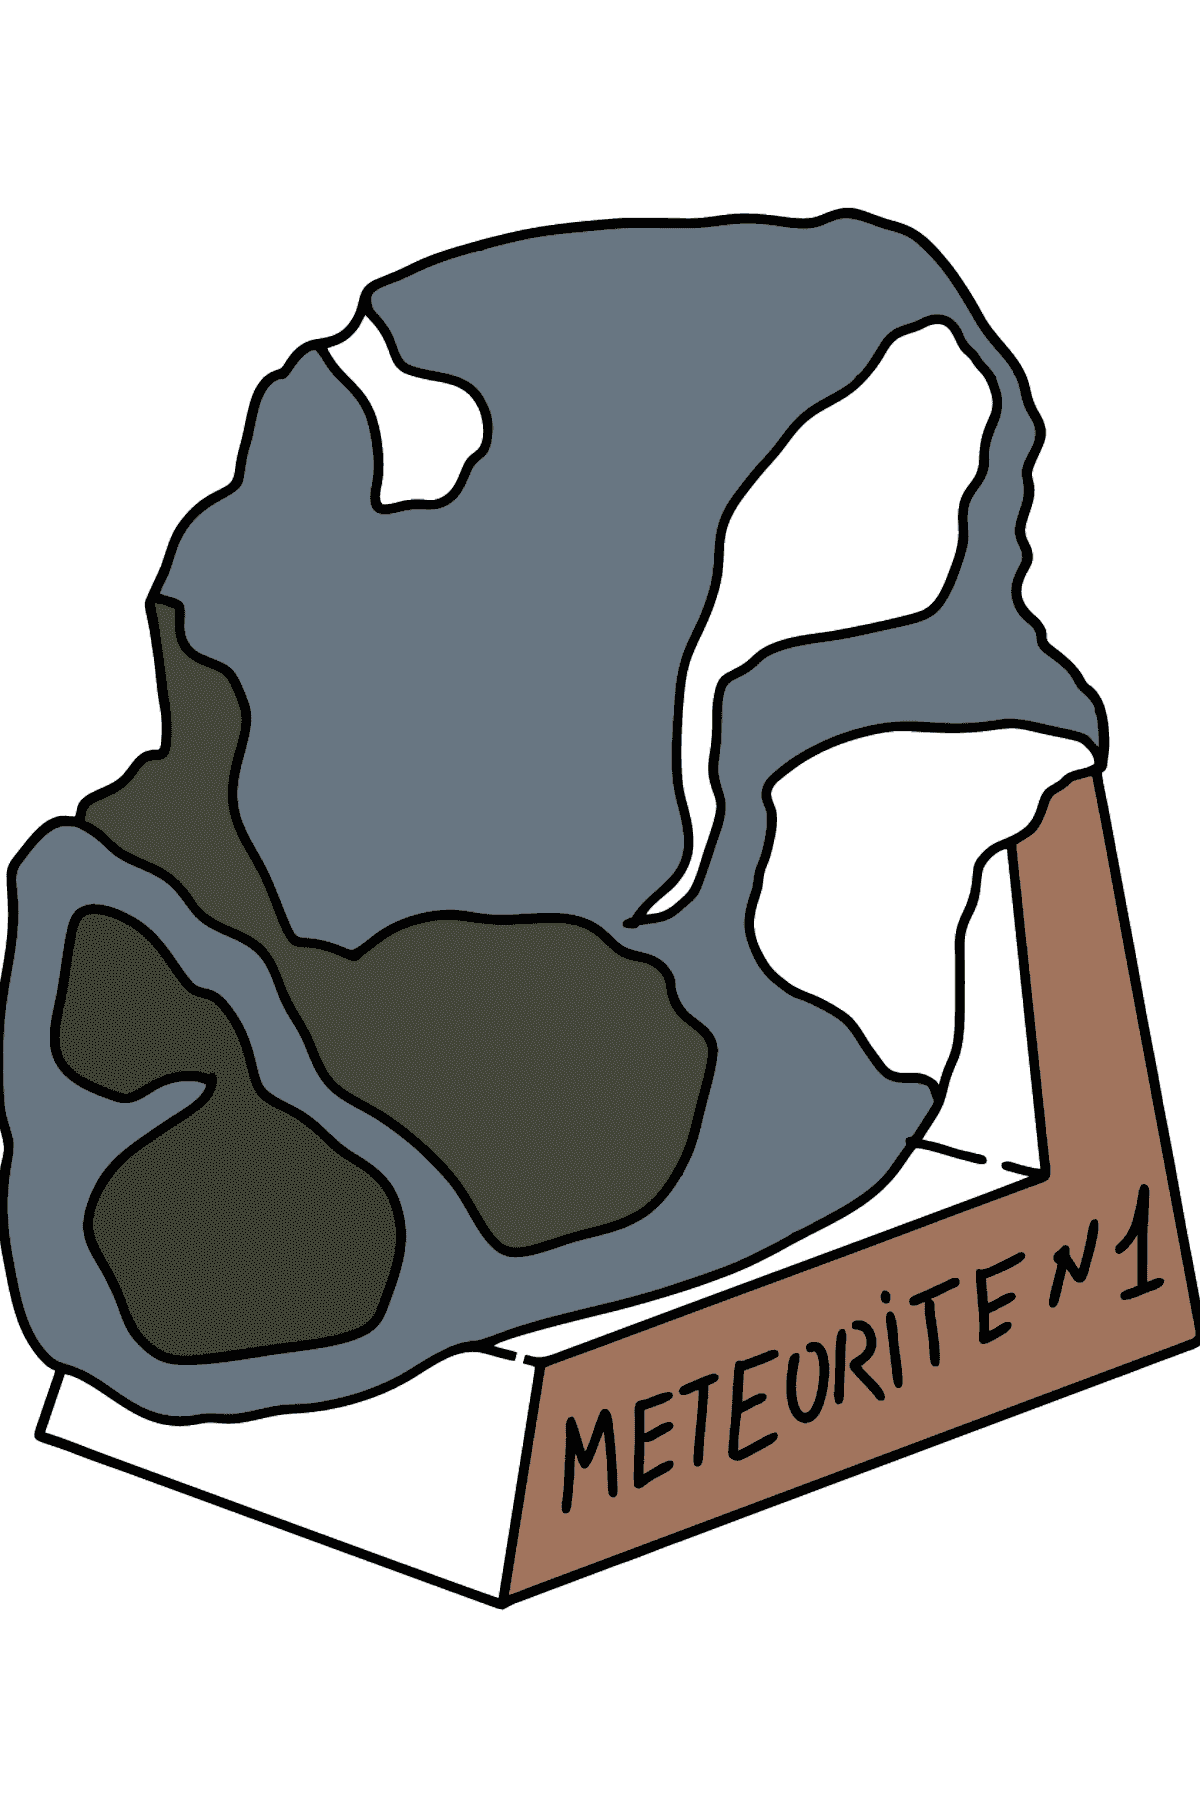 Meteorite coloring page - Coloring Pages for Kids